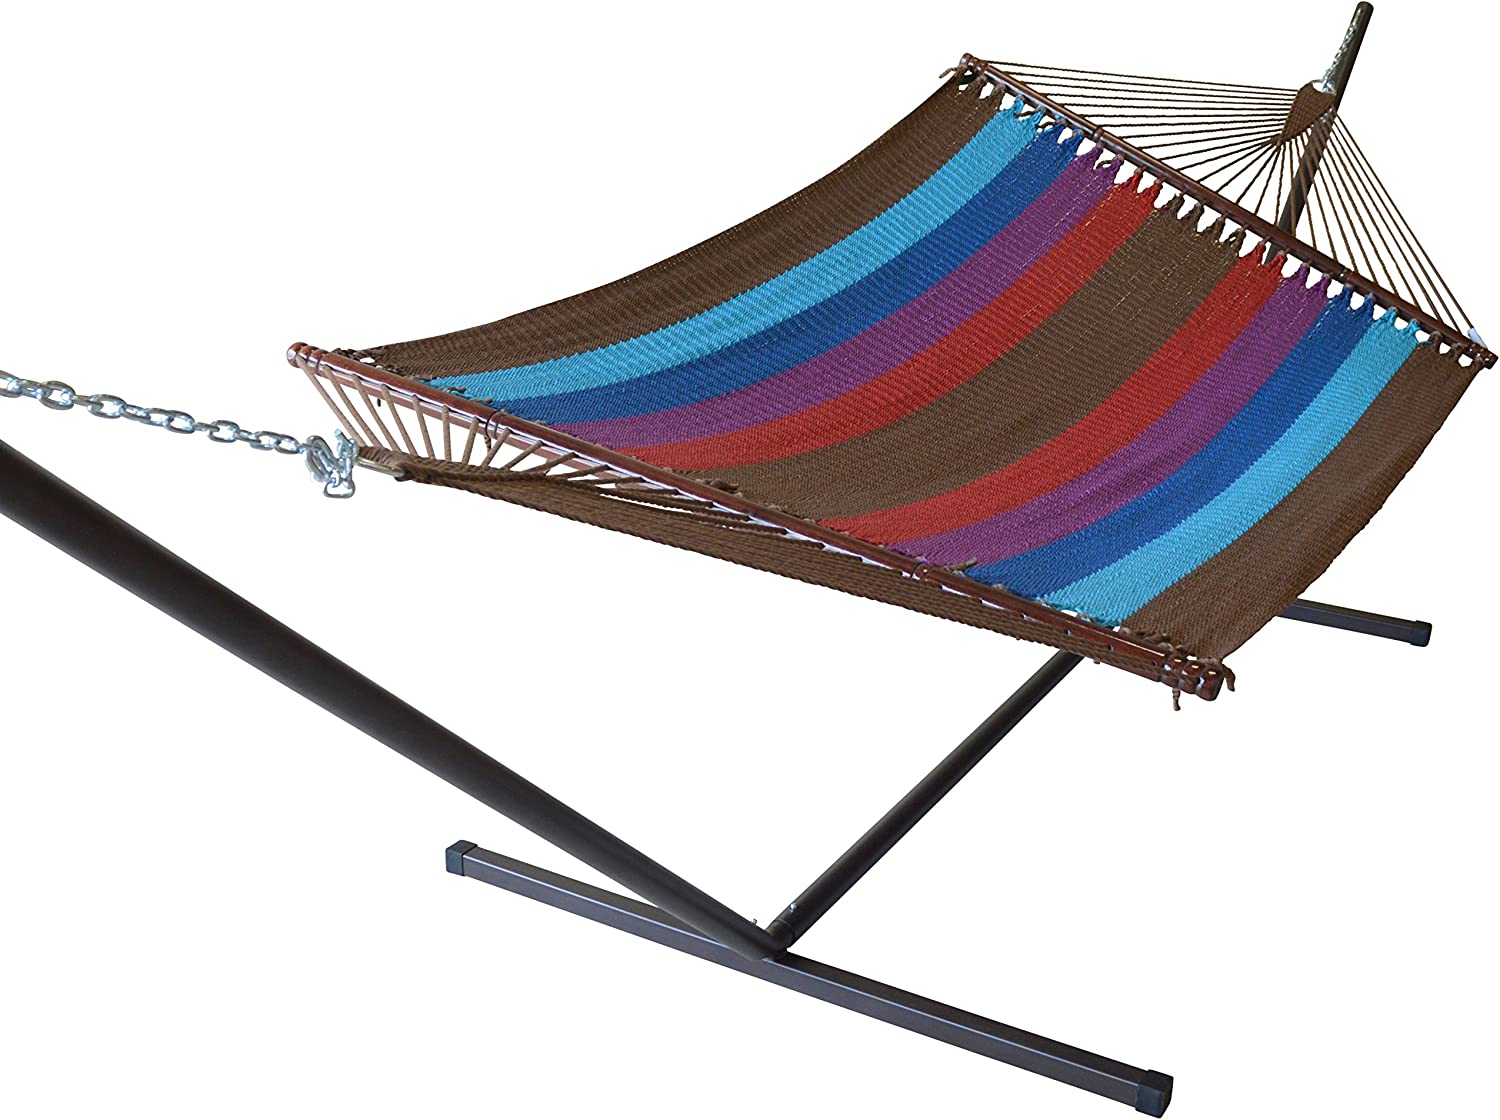 Caribbean Hammocks Jumbo Hammock and 15 ft Tribeam Stand - Multi Color Light Blue